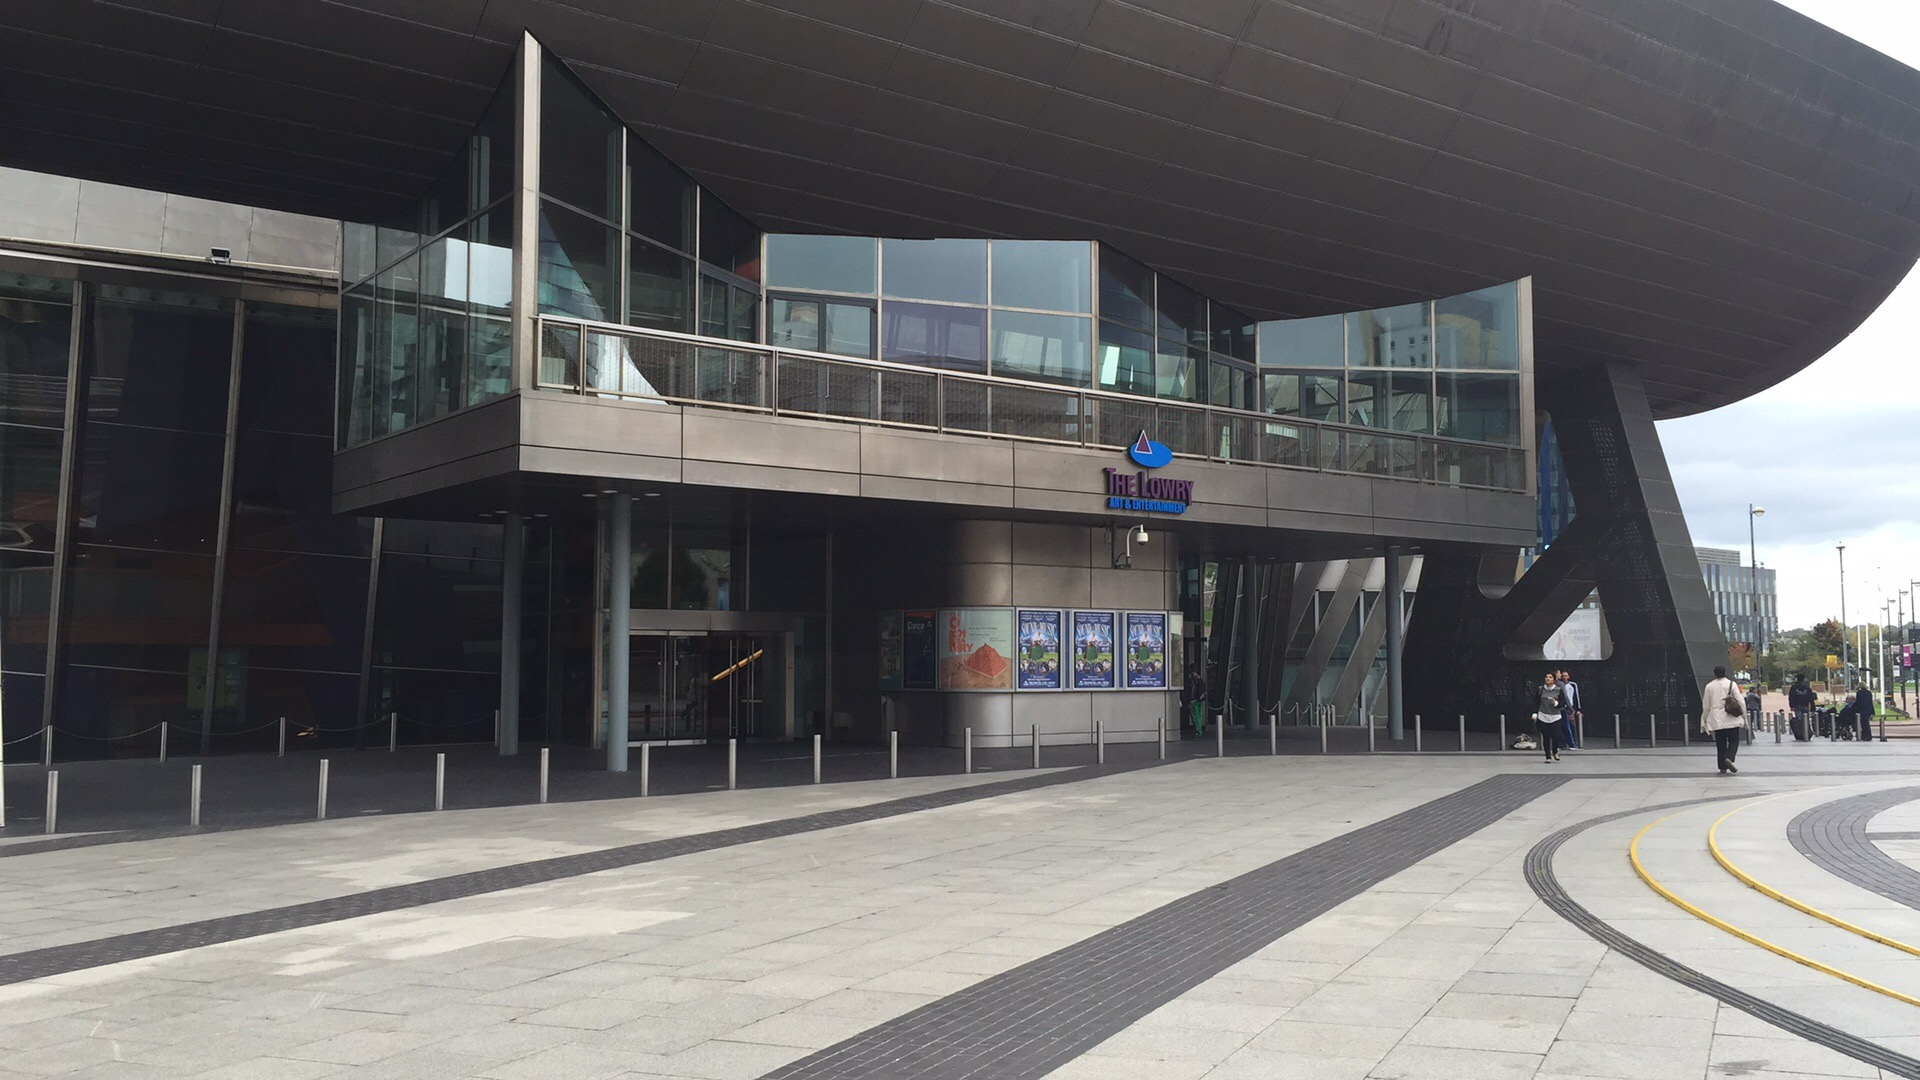 Lowry Theater Salford Quays